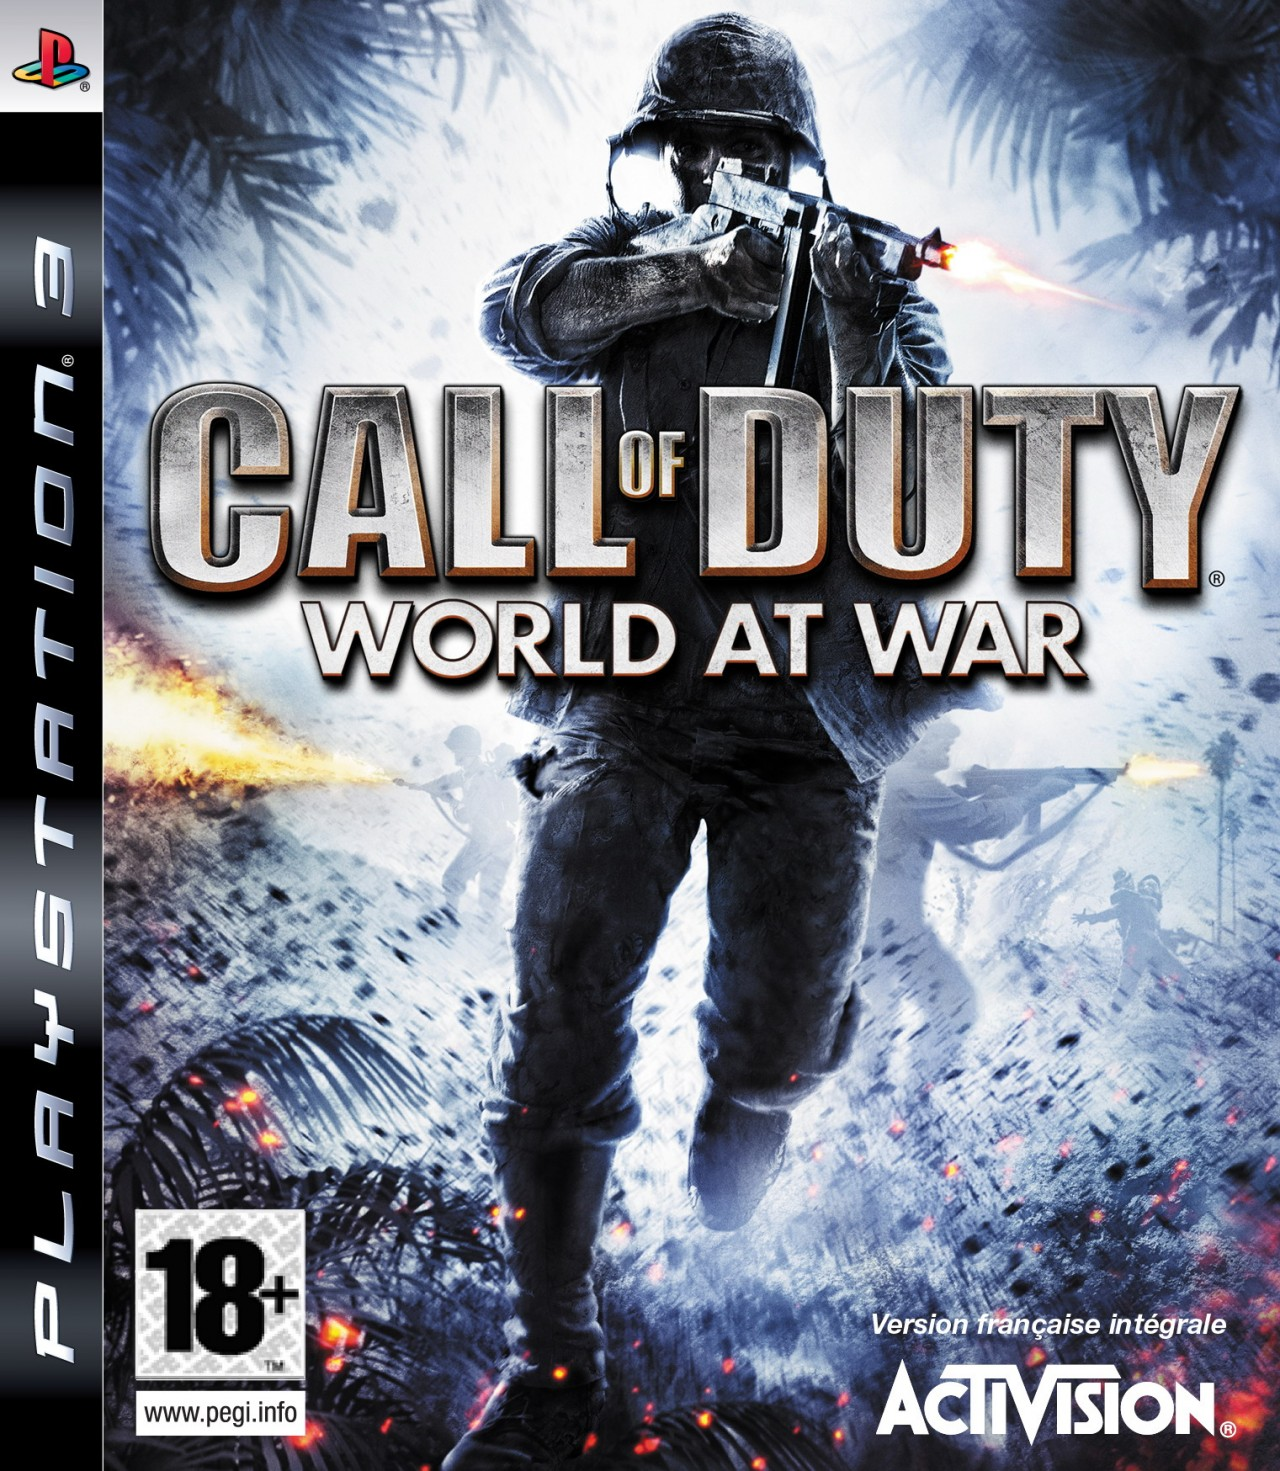 http://img.jeuxactu.com/datas/images/jeux/Call_of_Duty__World_at_War/packaging/xl/49130936c25cb.jpg